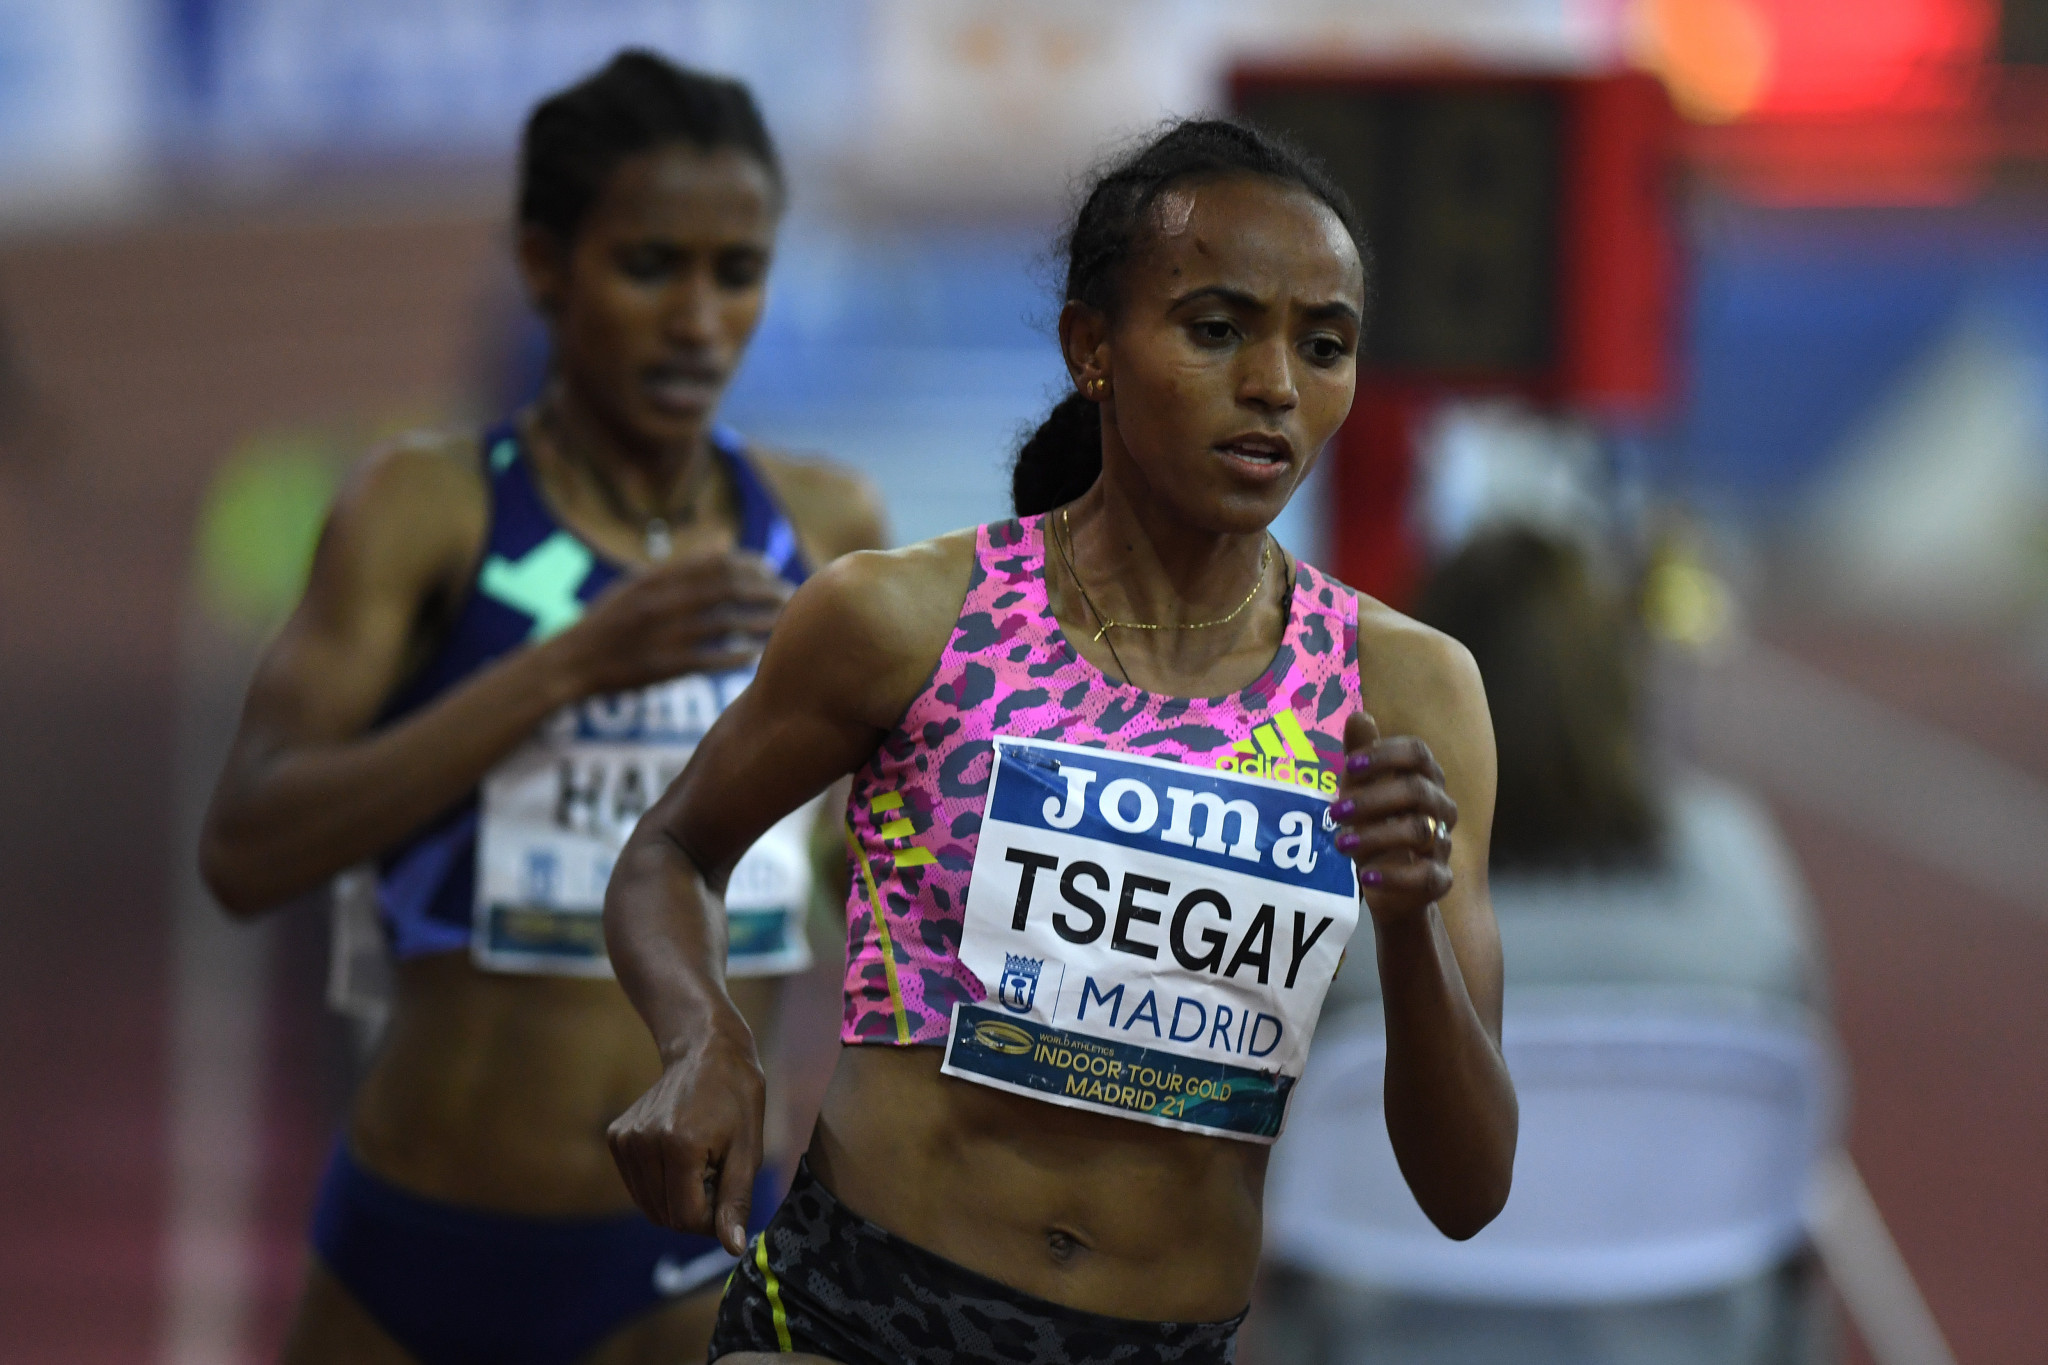 Gudaf Tsegay broke the women's 1500m world record earlier this year ©Getty Images